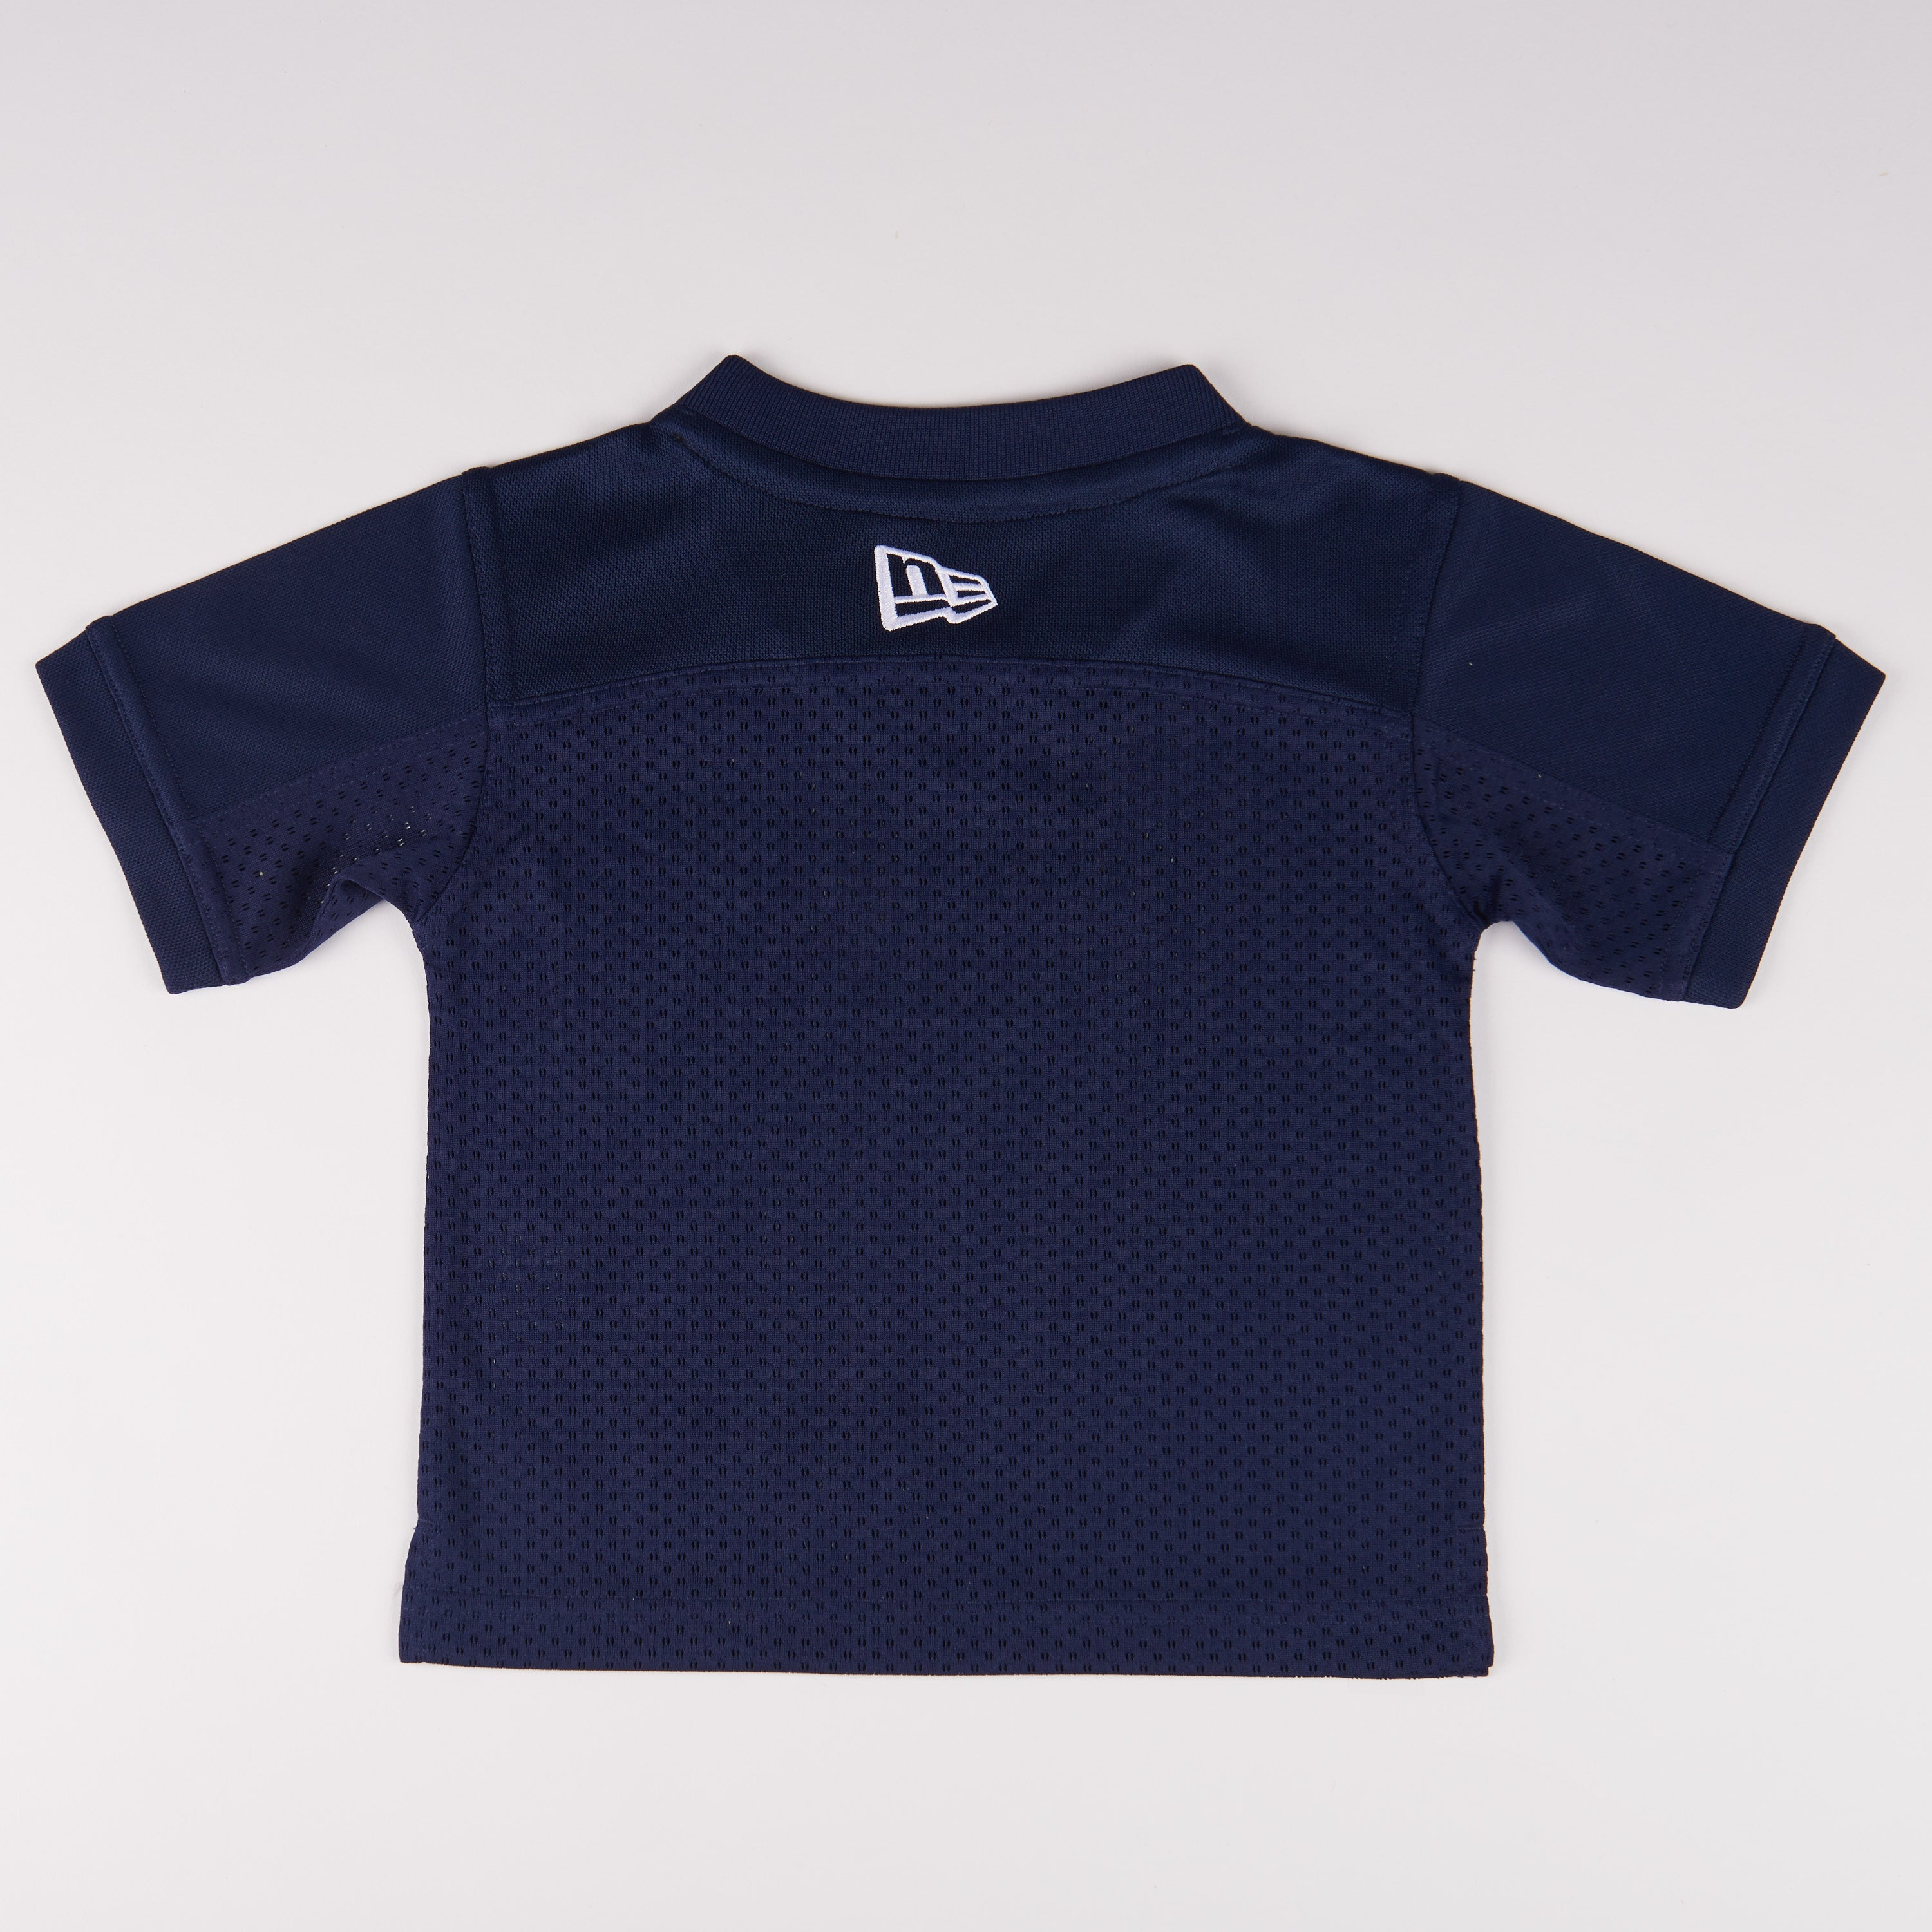 Argos Infant Replica Blank Home Jersey